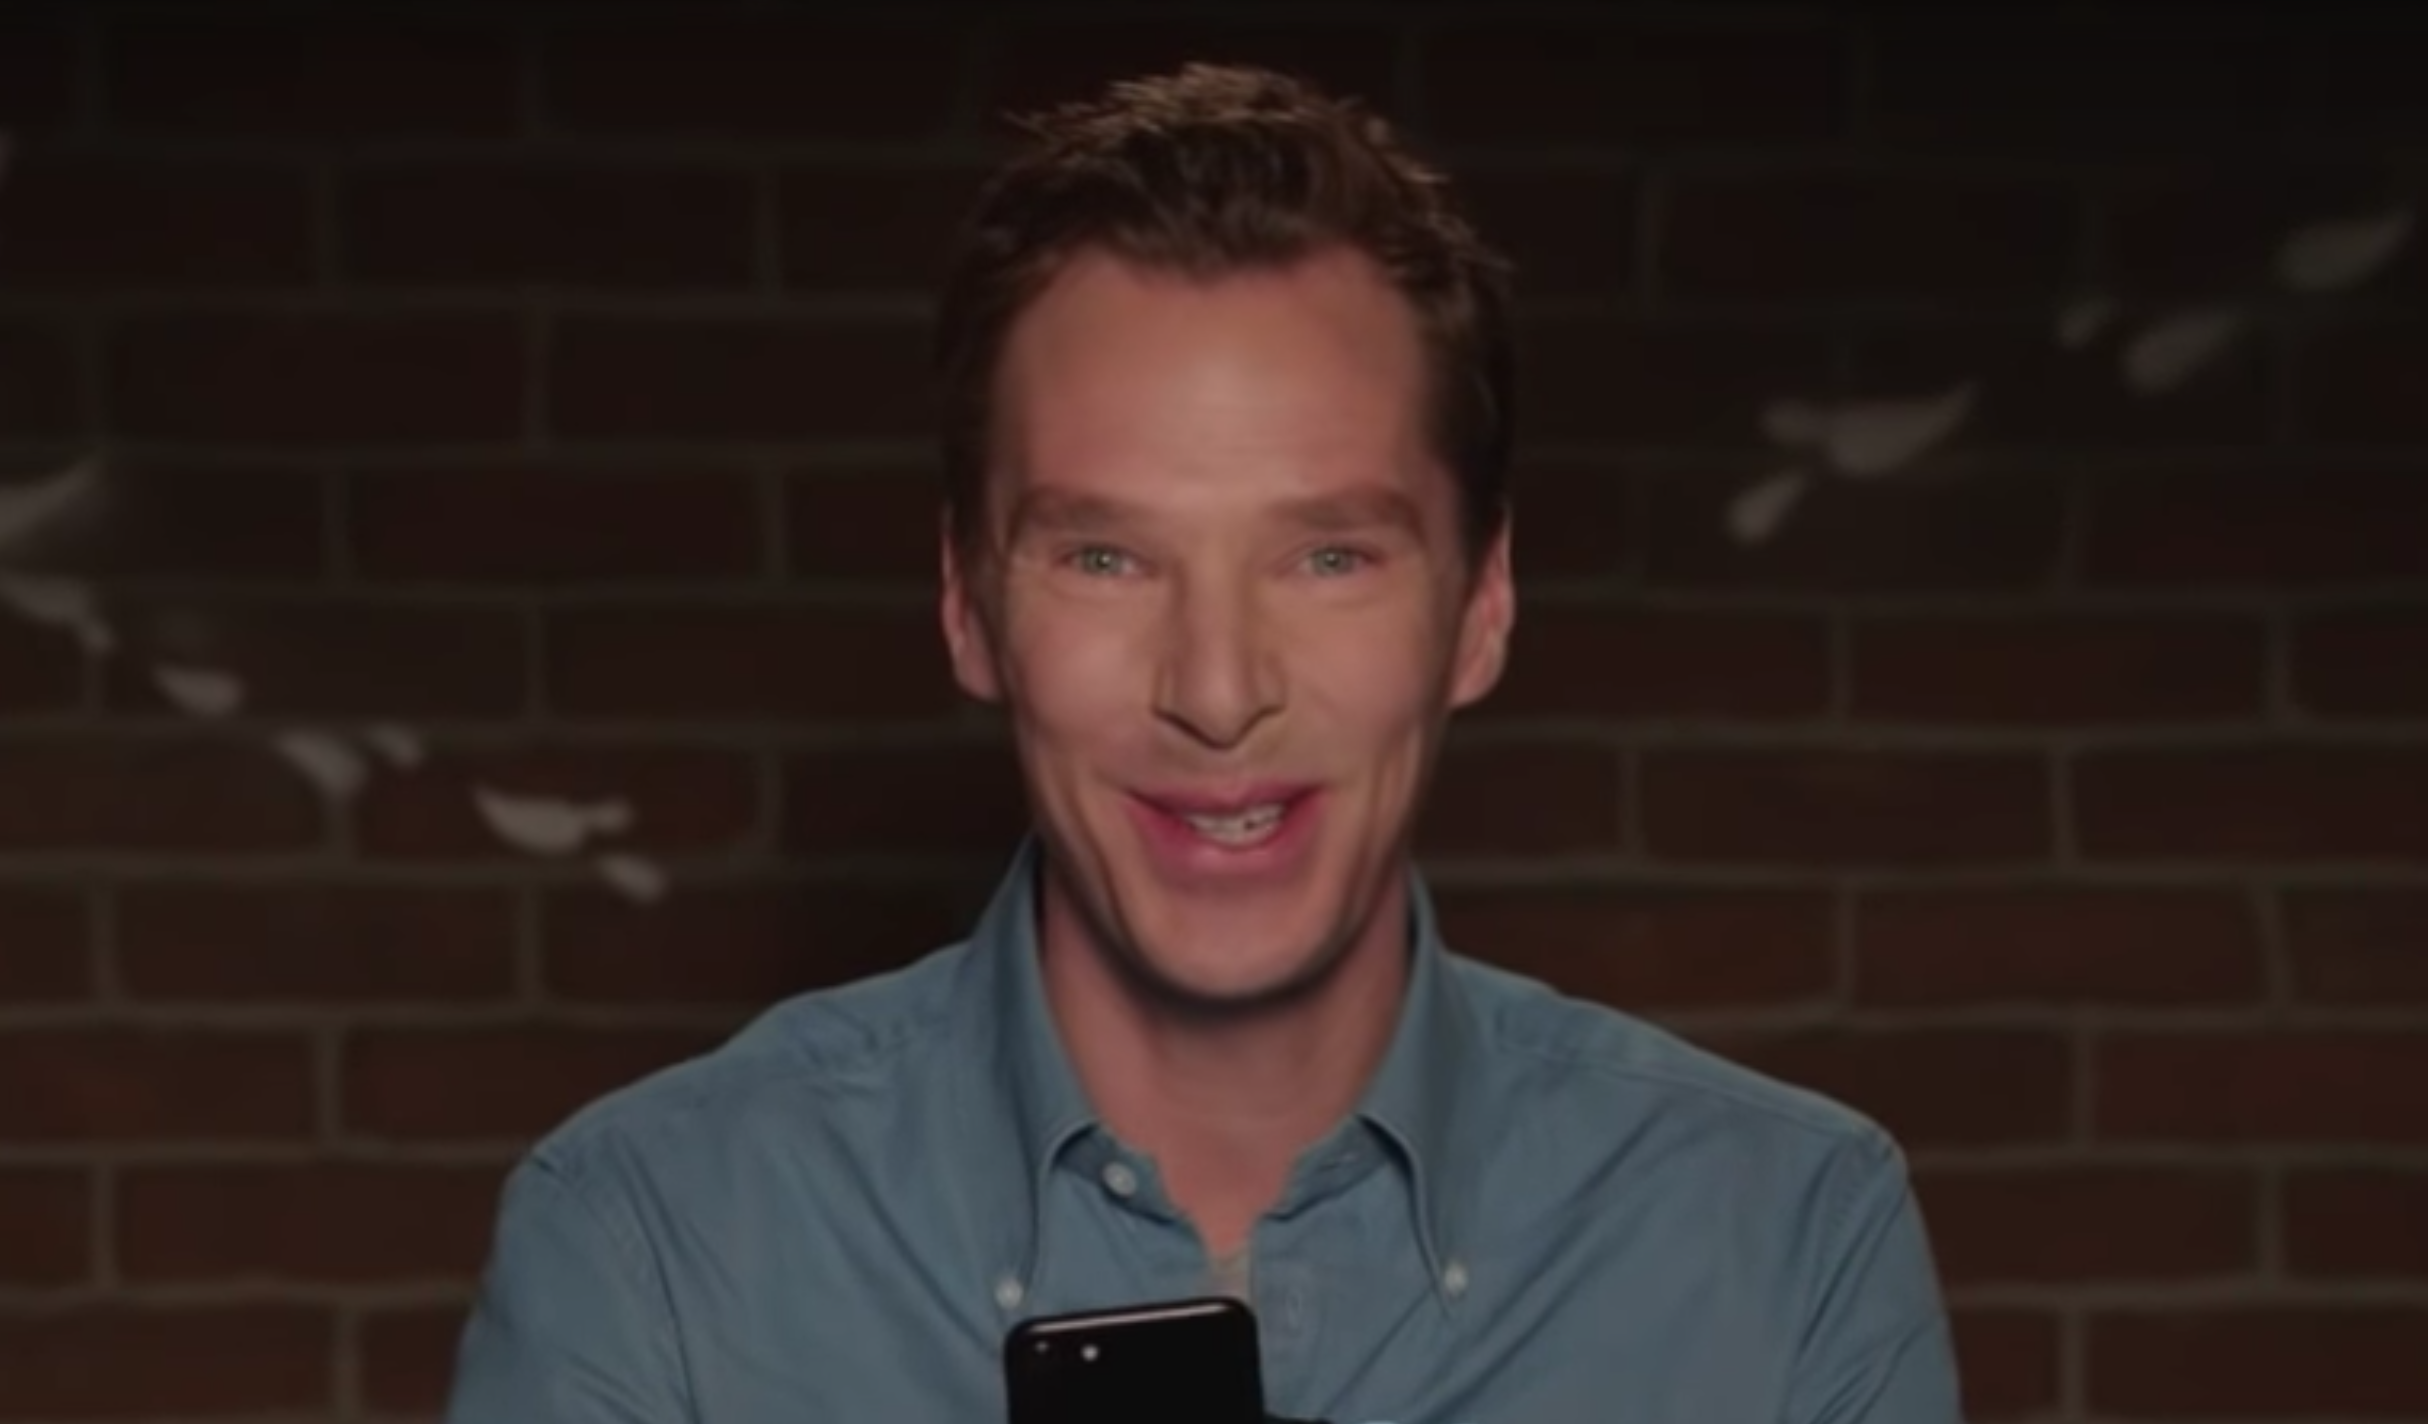 Benedict Cumberbatch, Karen Gillan and Tom Hiddleston read out Mean Tweets in Avengers special